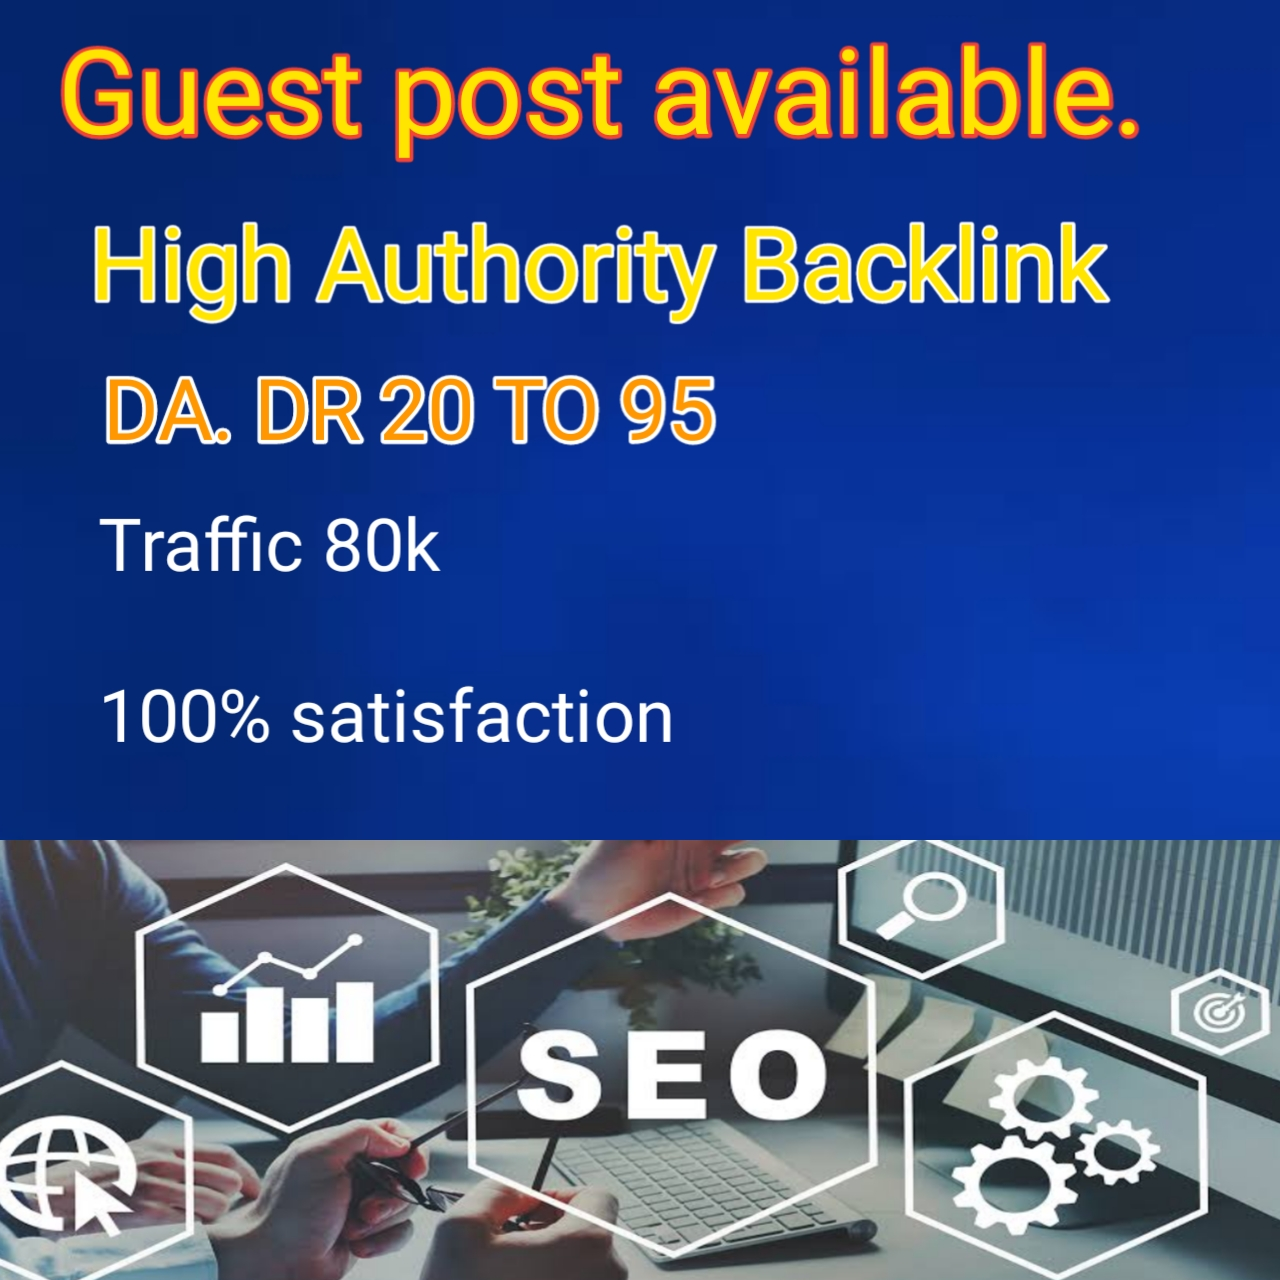 High authority Guest post Backlink sites available